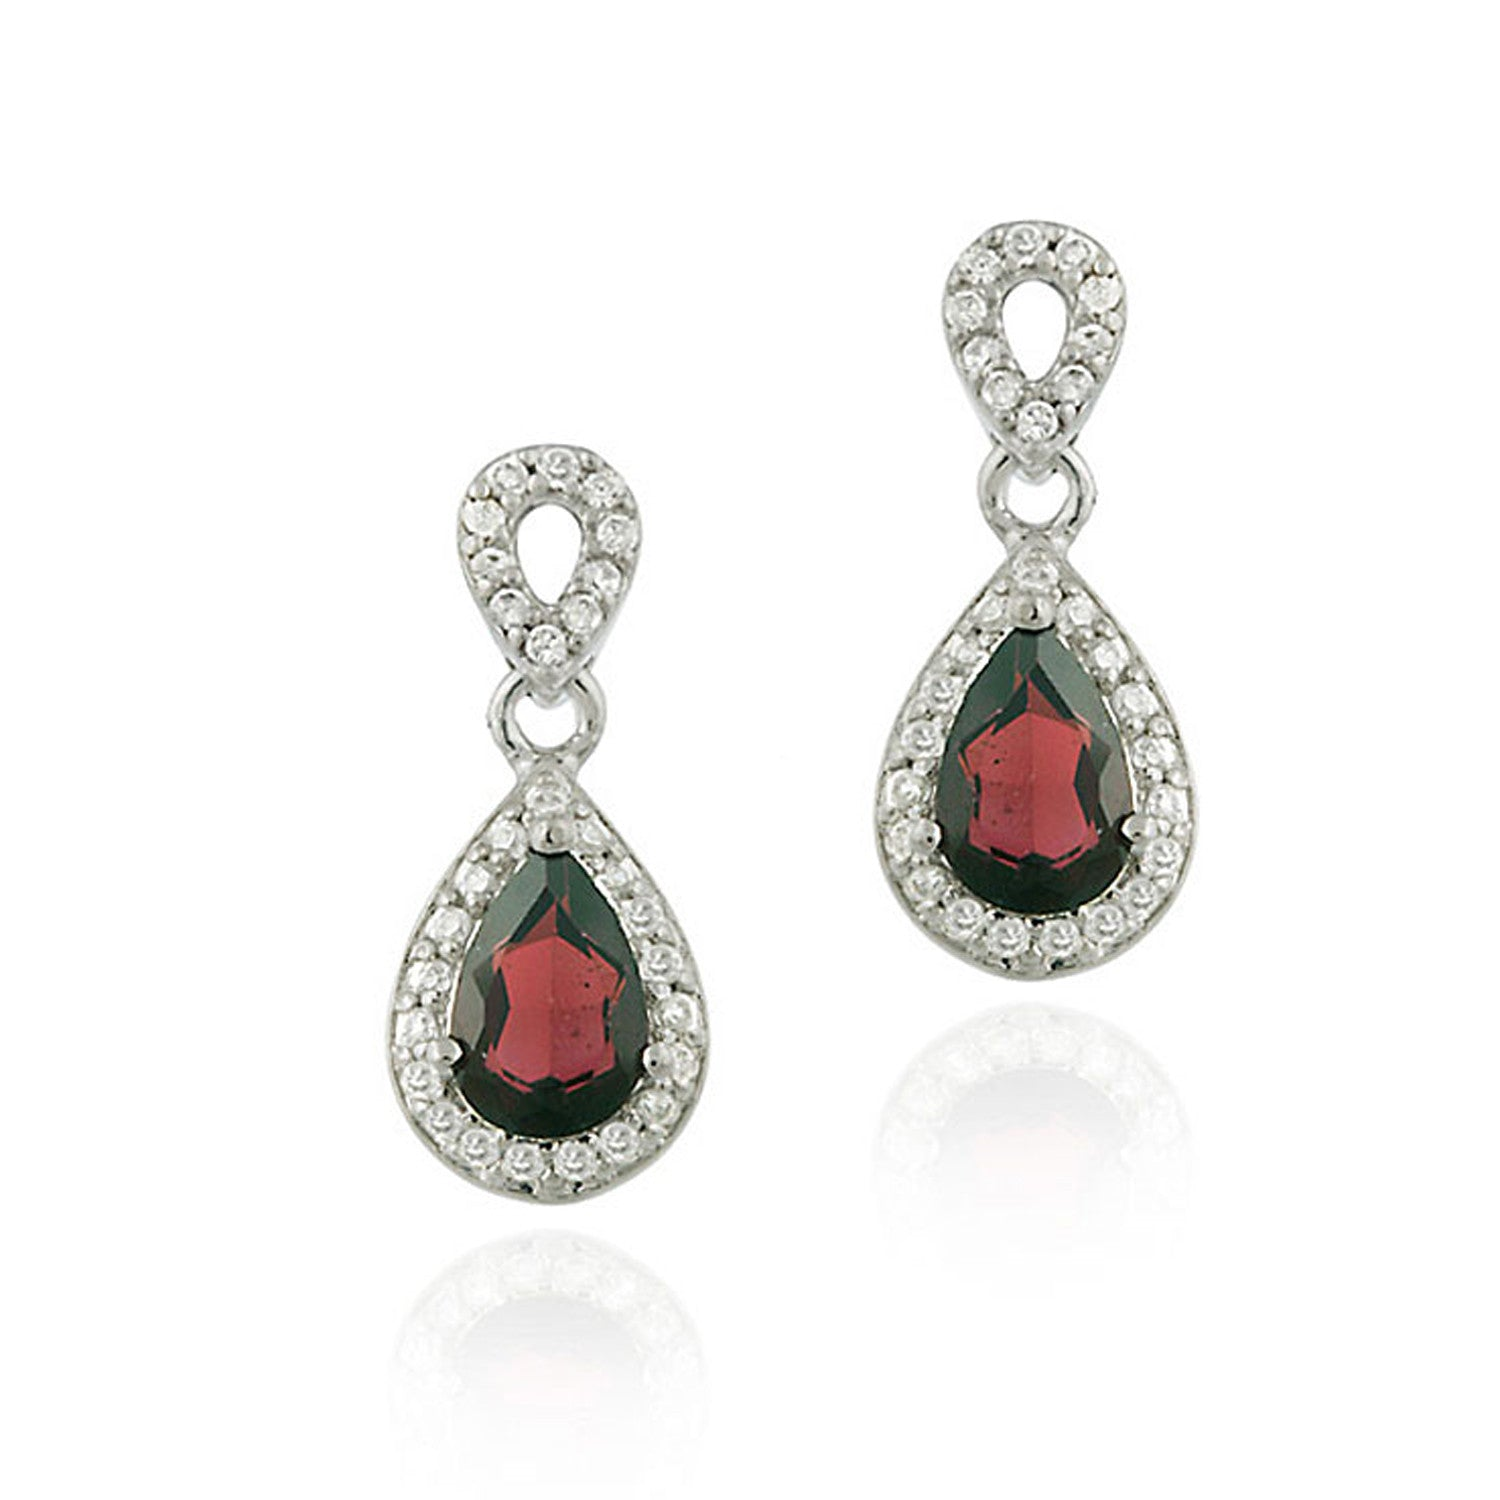 Cubic Zirconia Accented Sterling Silver Teardrop Dangle Earrings - Gold / Garnet